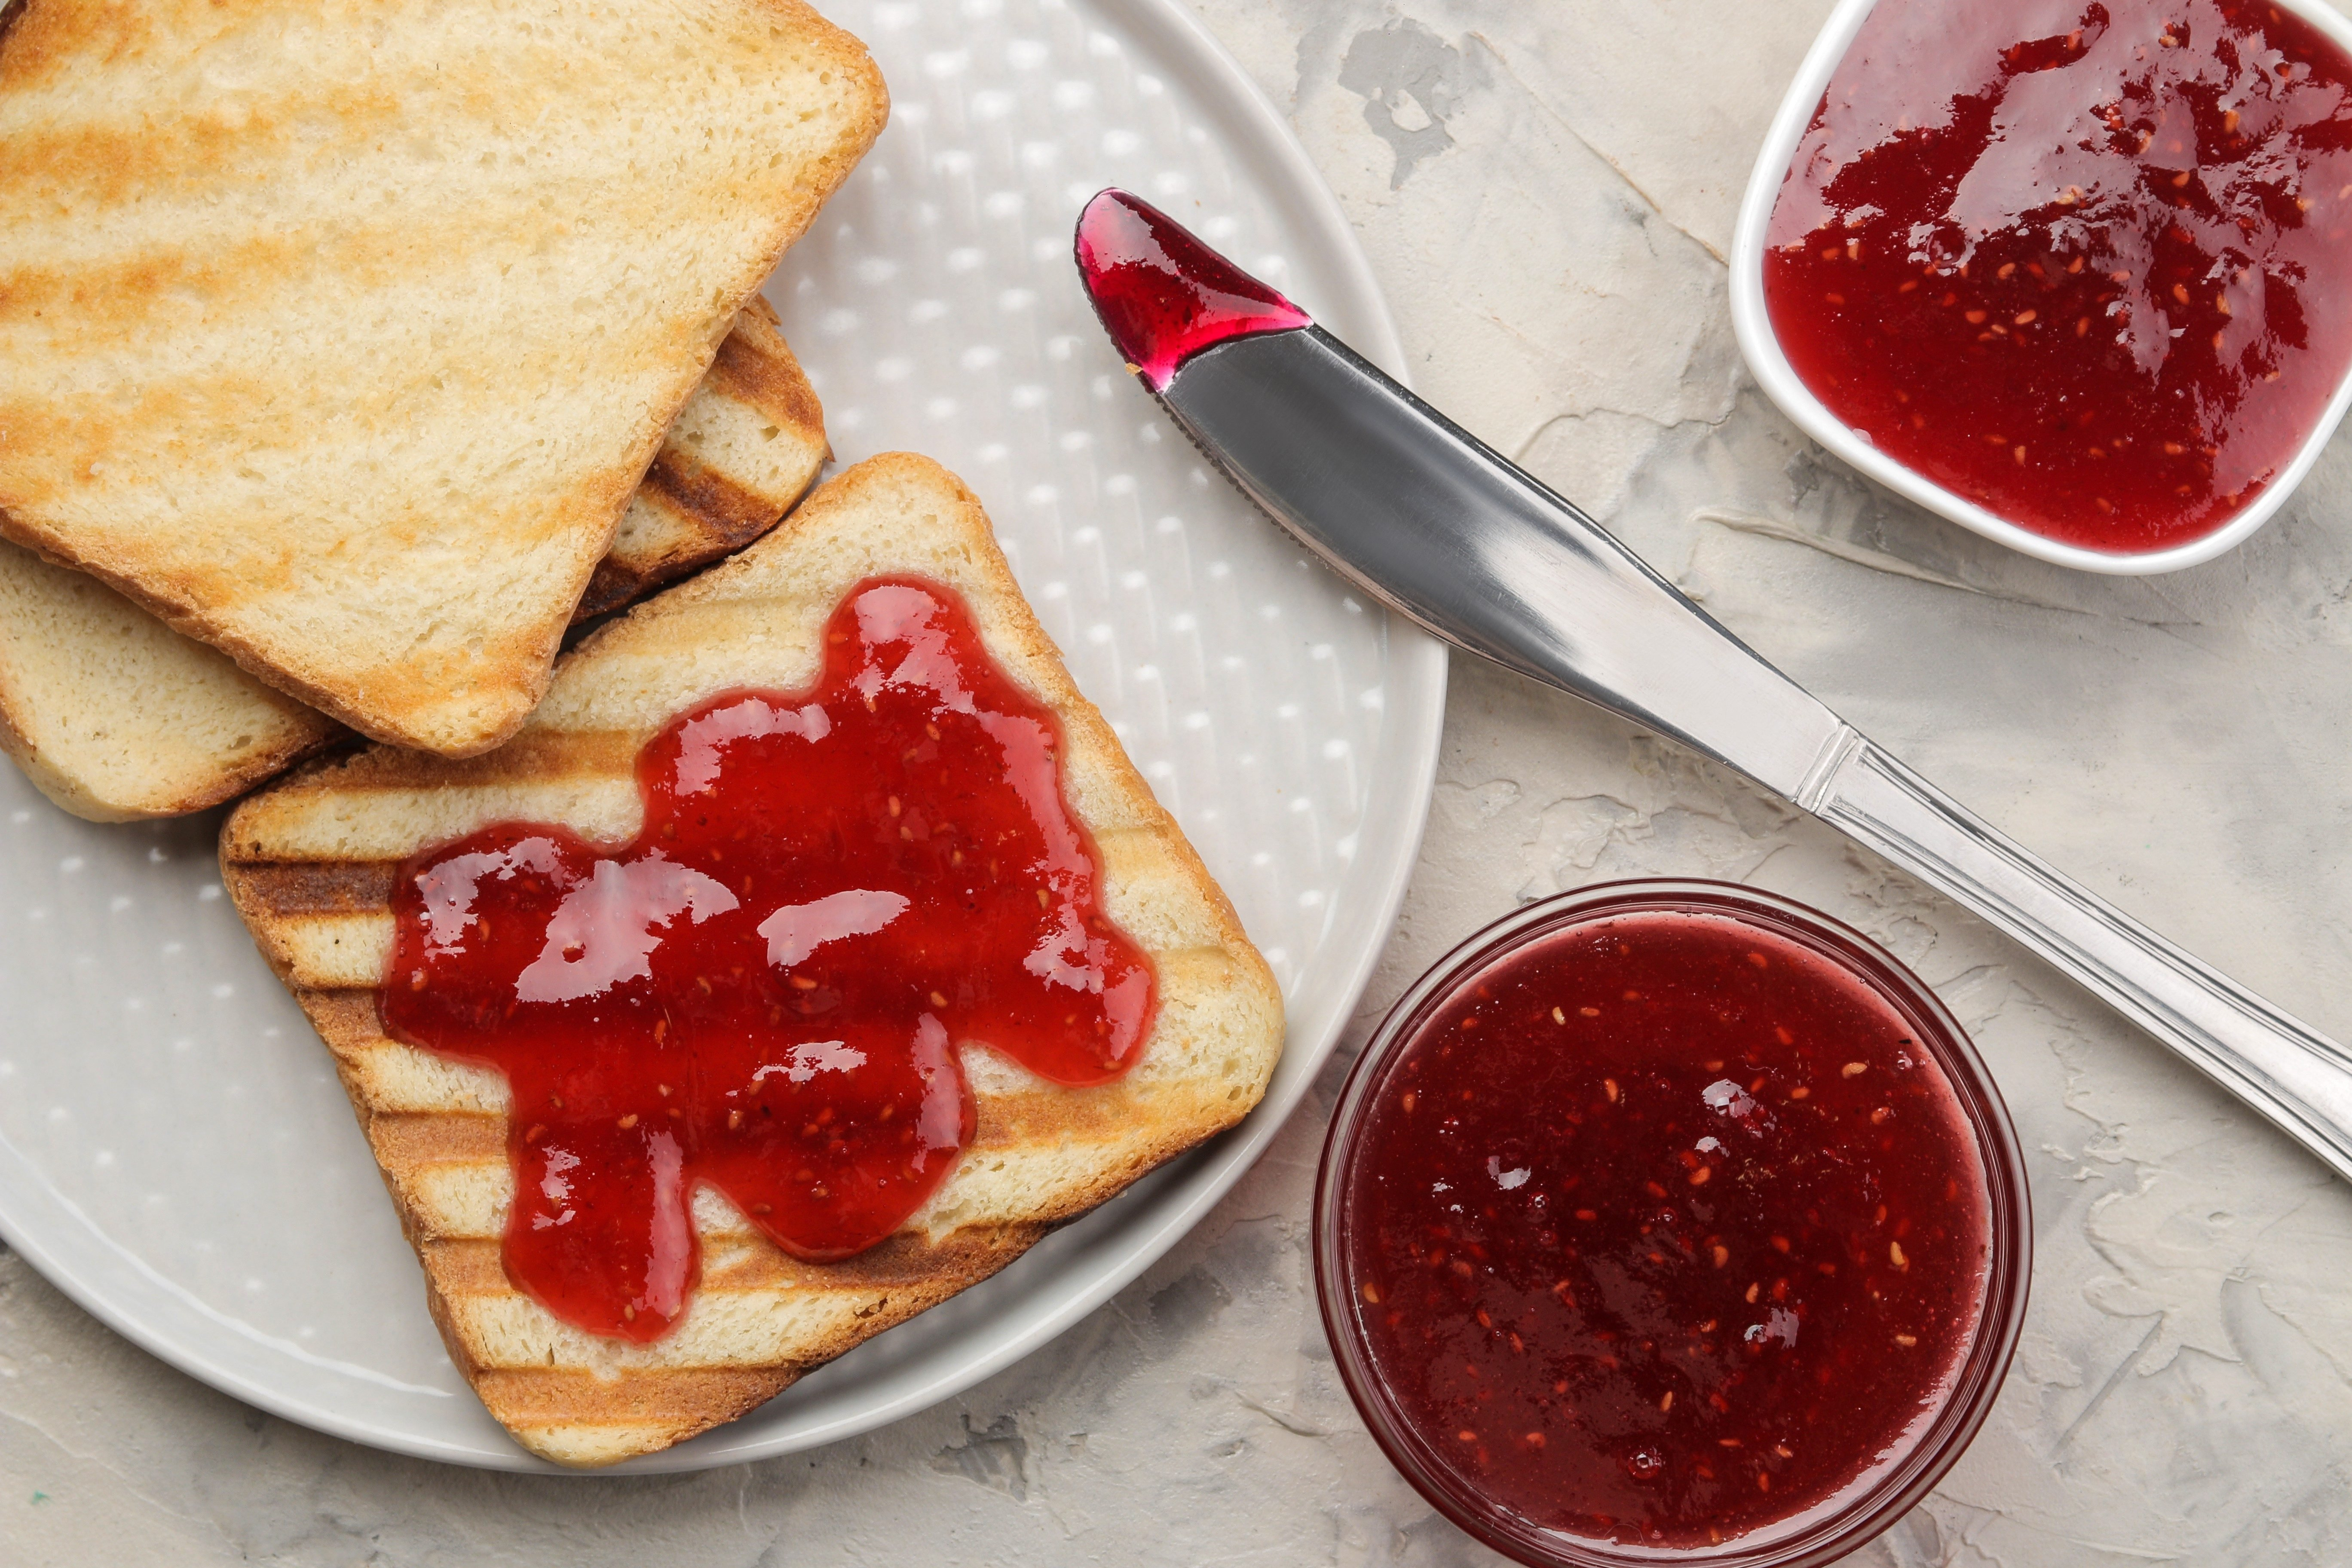 toasts with jam. fried crispy toasts with red jam on a light concrete table. breakfast. top view